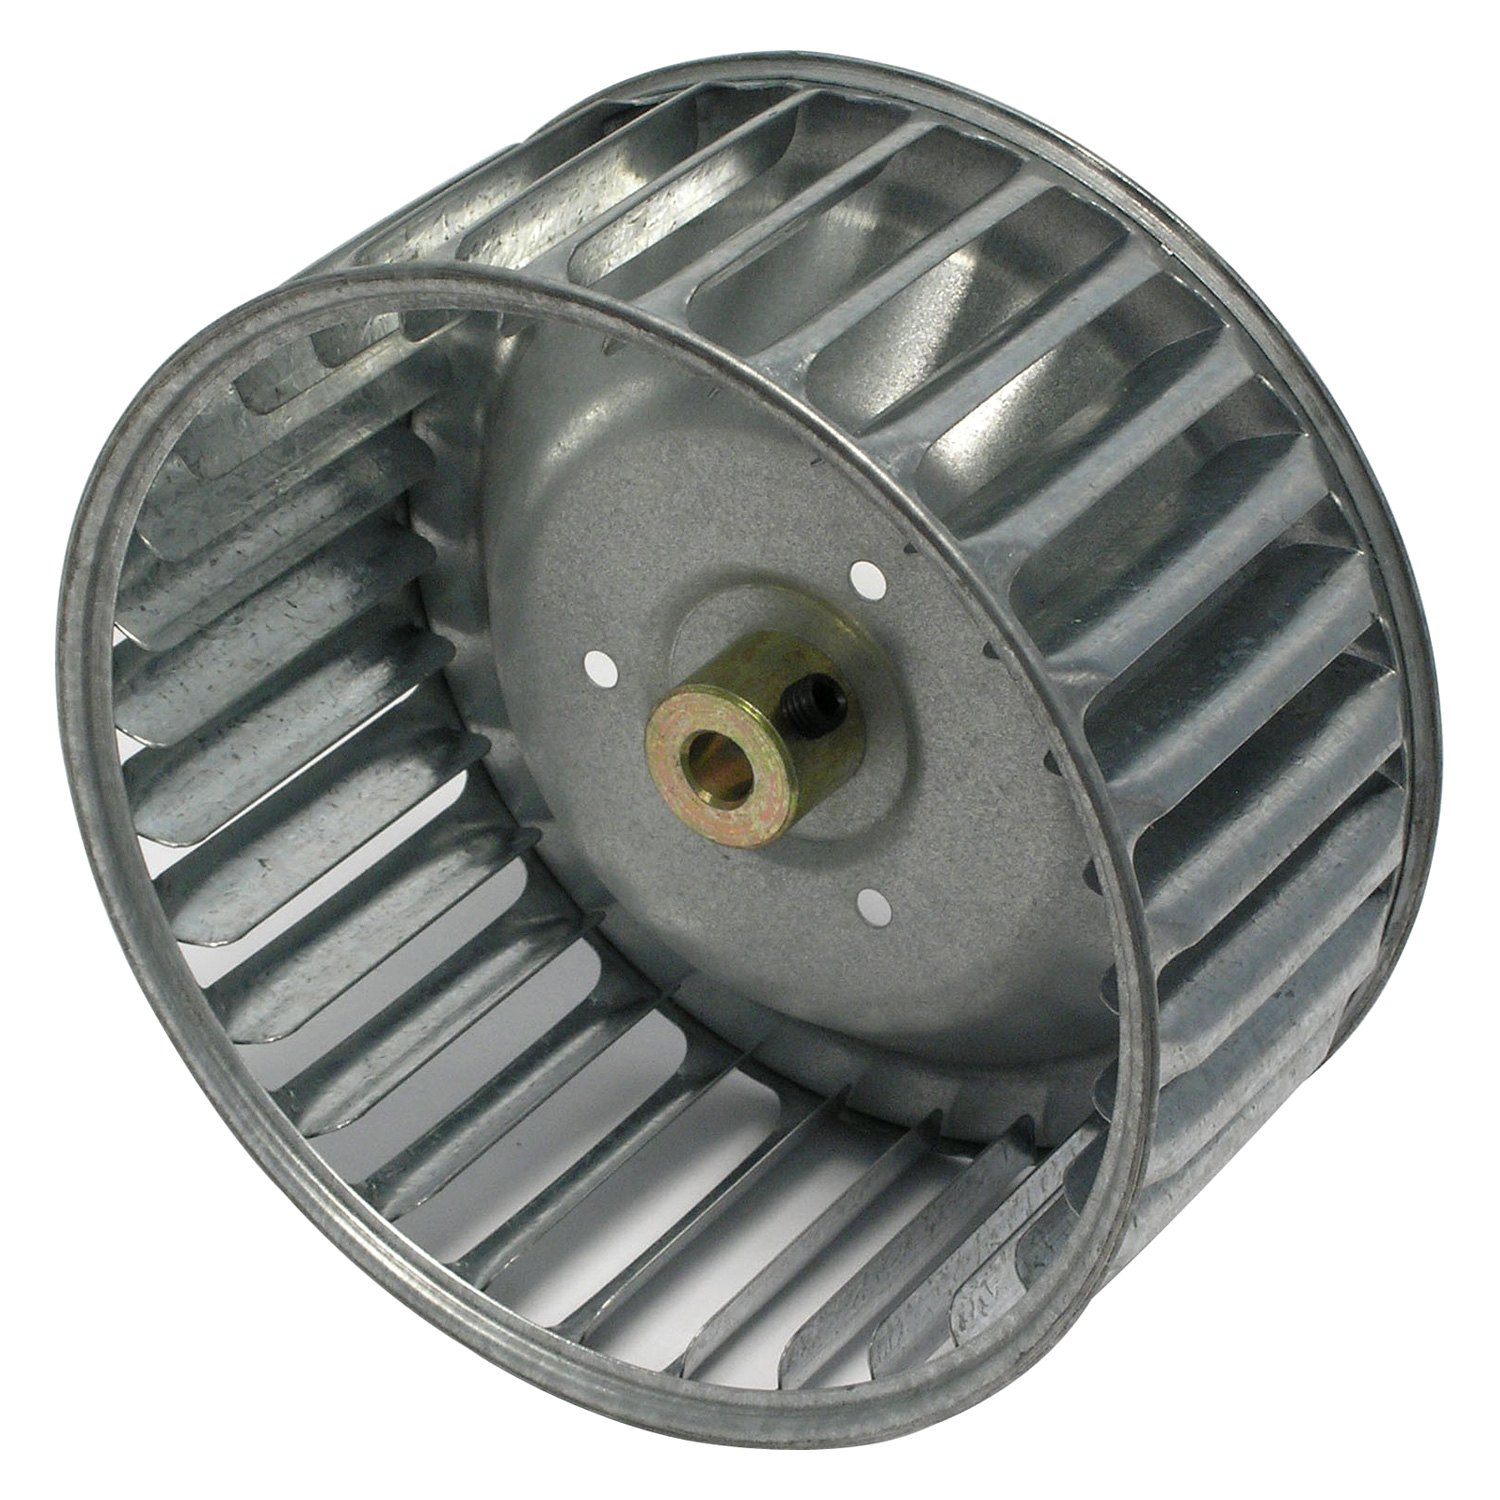 Data Aire Blower Wheels : Bw uac hvac blower motor wheel ebay